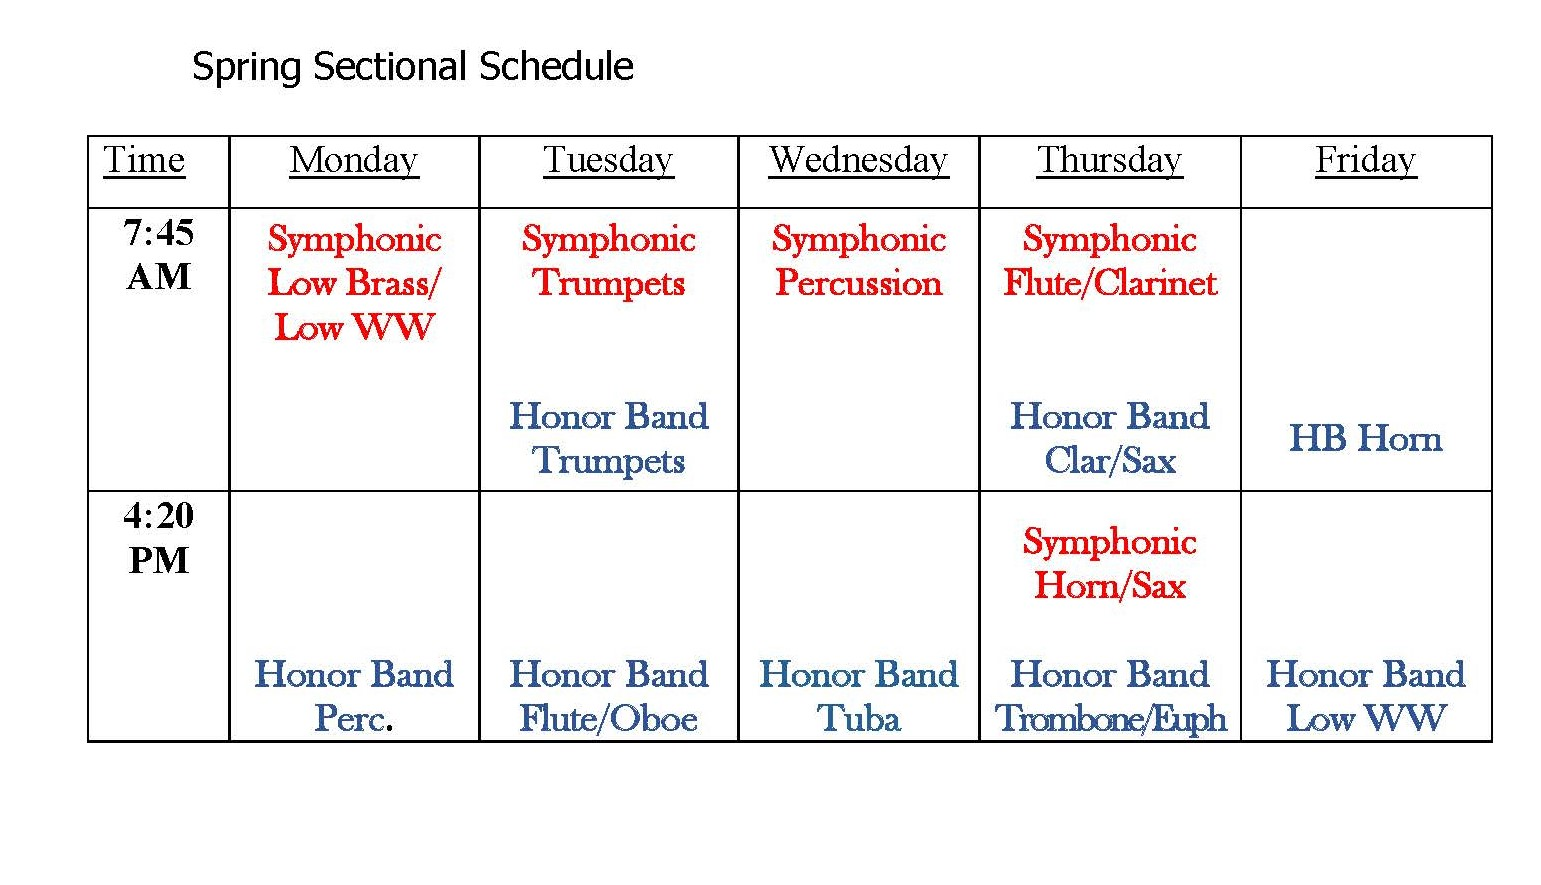 Spring Sectional Schedule